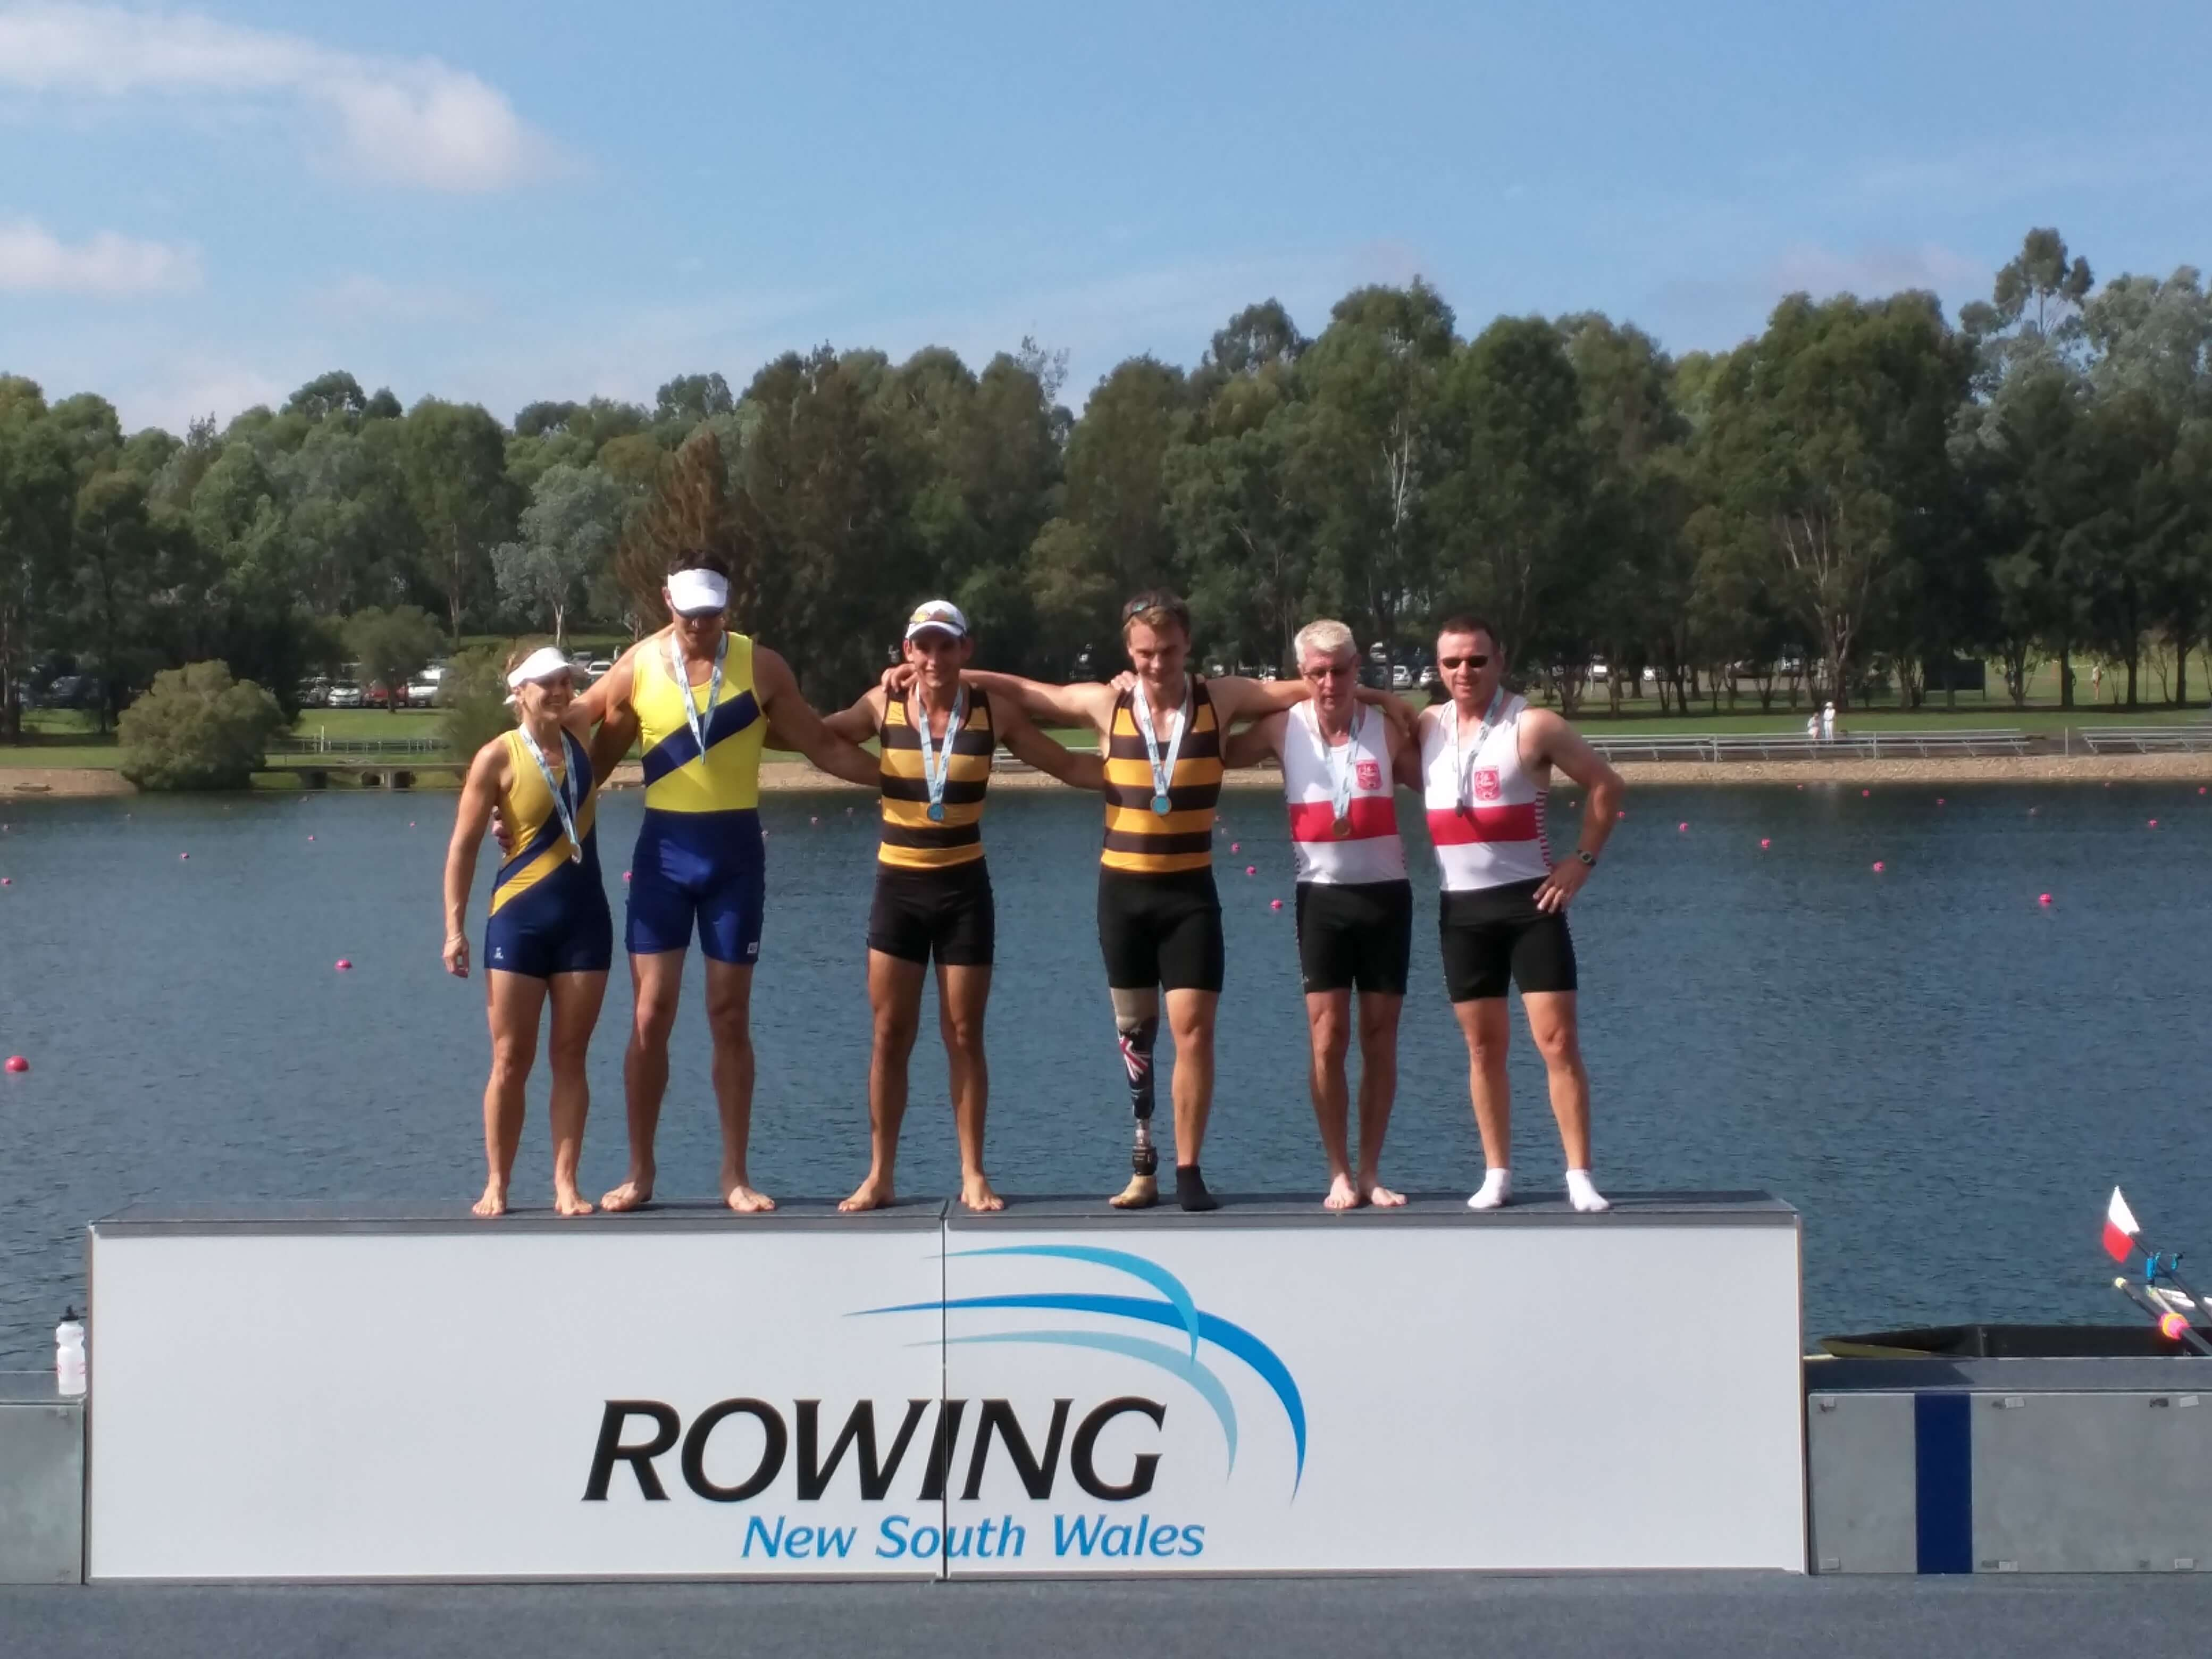 Balmain Rowing Club, St George Rowing Club and Canberra Rowing Club all have strong para-rowing programs. Your club can build one too!